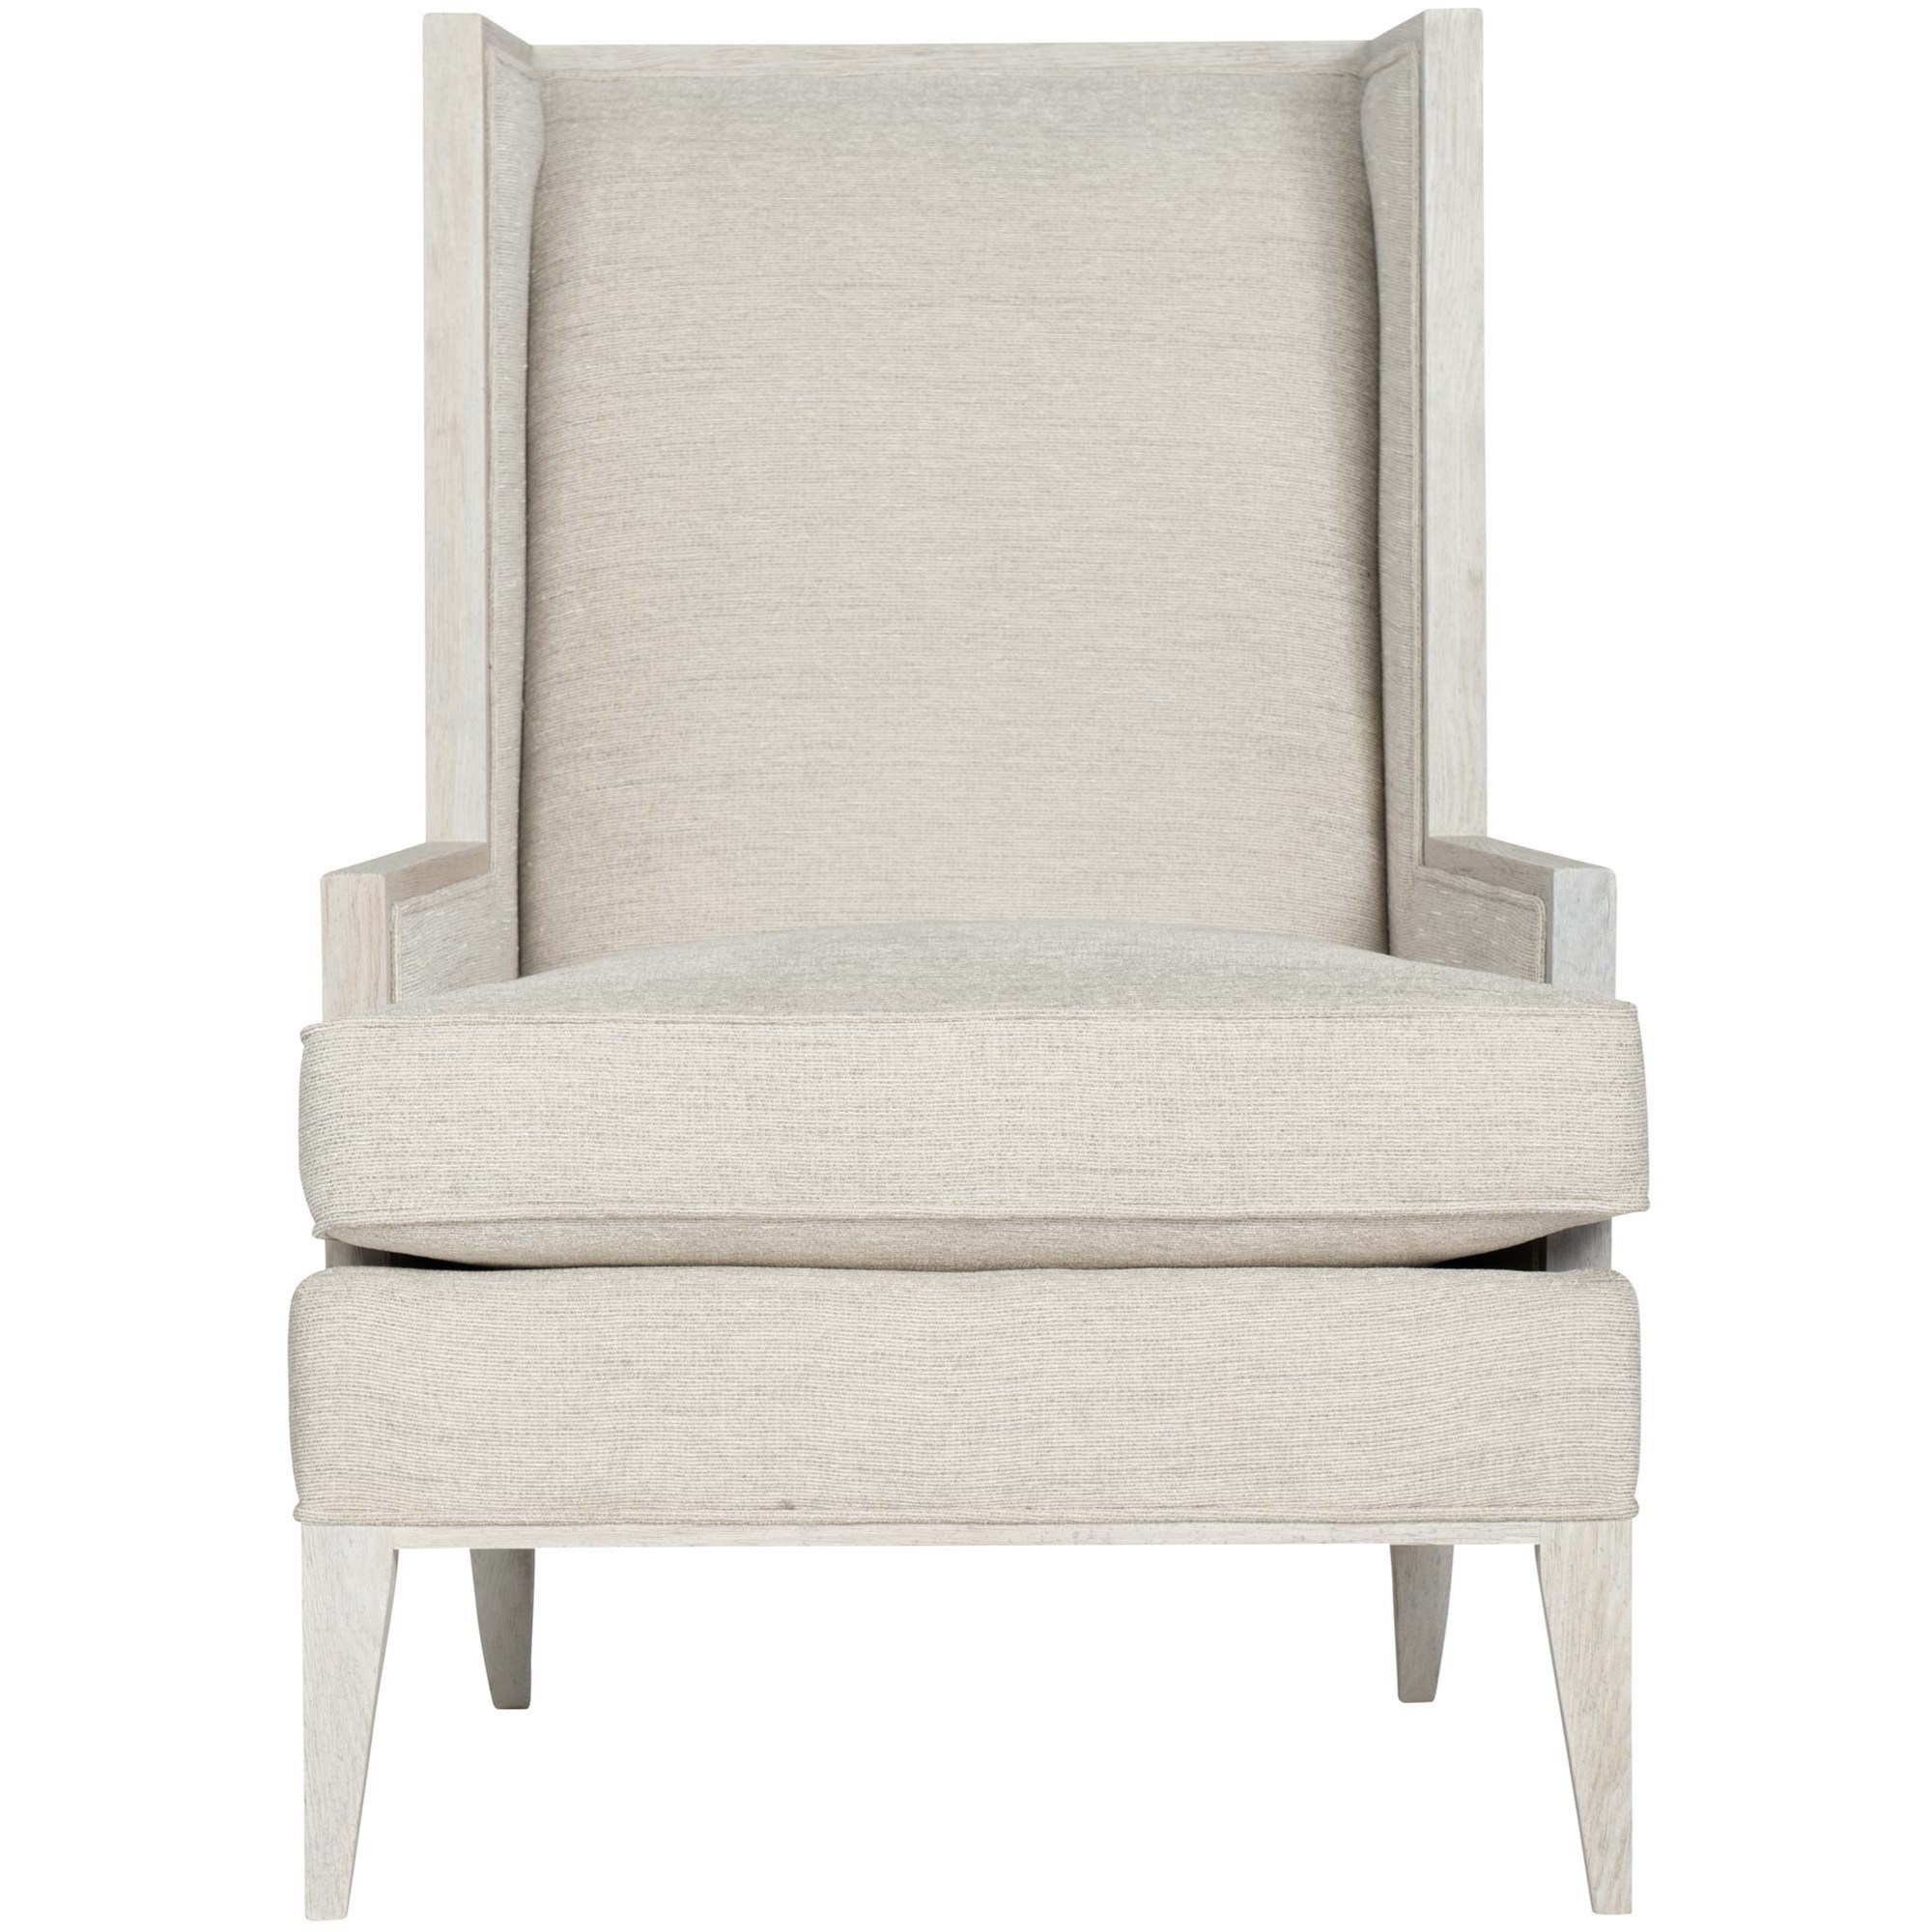 Interiors - Marigot Chair by Bernhardt at Stuckey Furniture